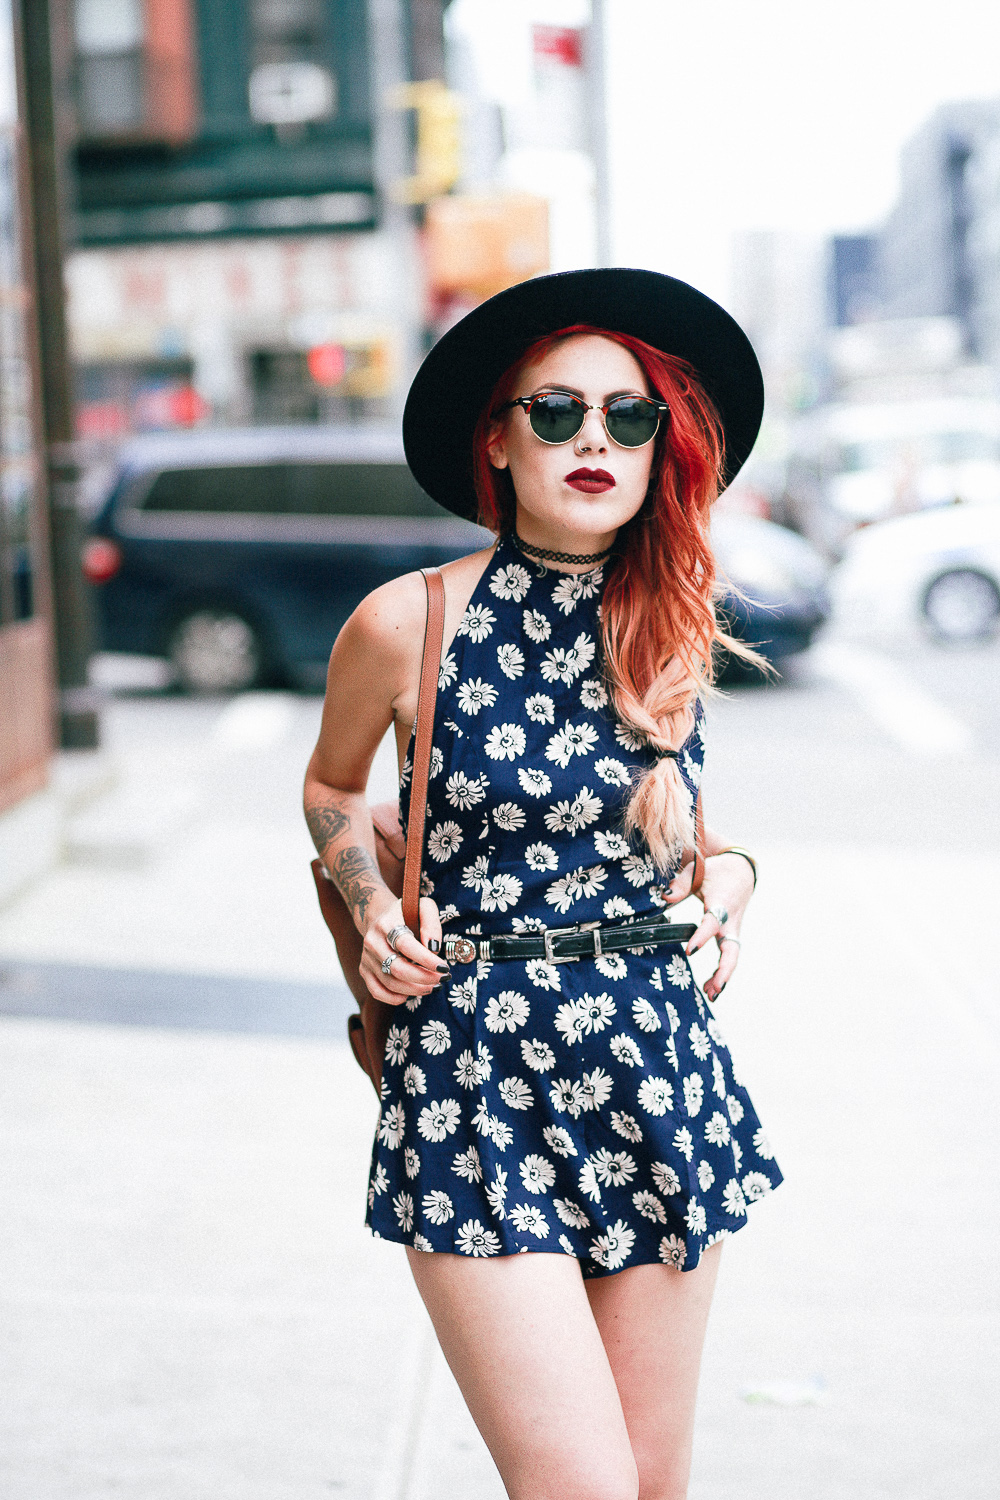 Le Happy wearing floral romper from Asos  and a fedora hat